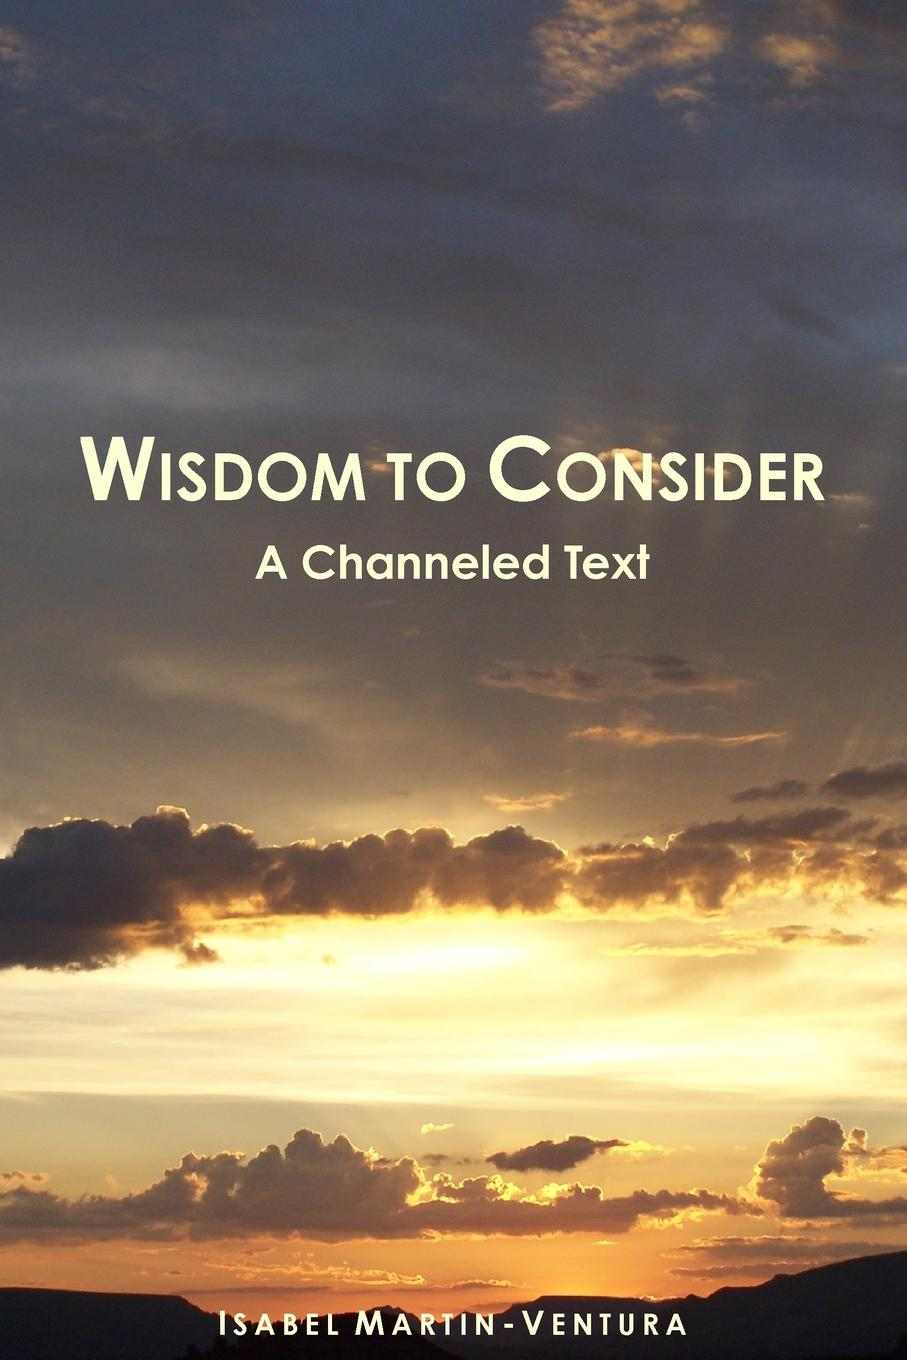 Isabel Martin-Ventura Wisdom to Consider - A Channeled Text автор не указан the wisdom of angels concerning divine love and divine wisdom